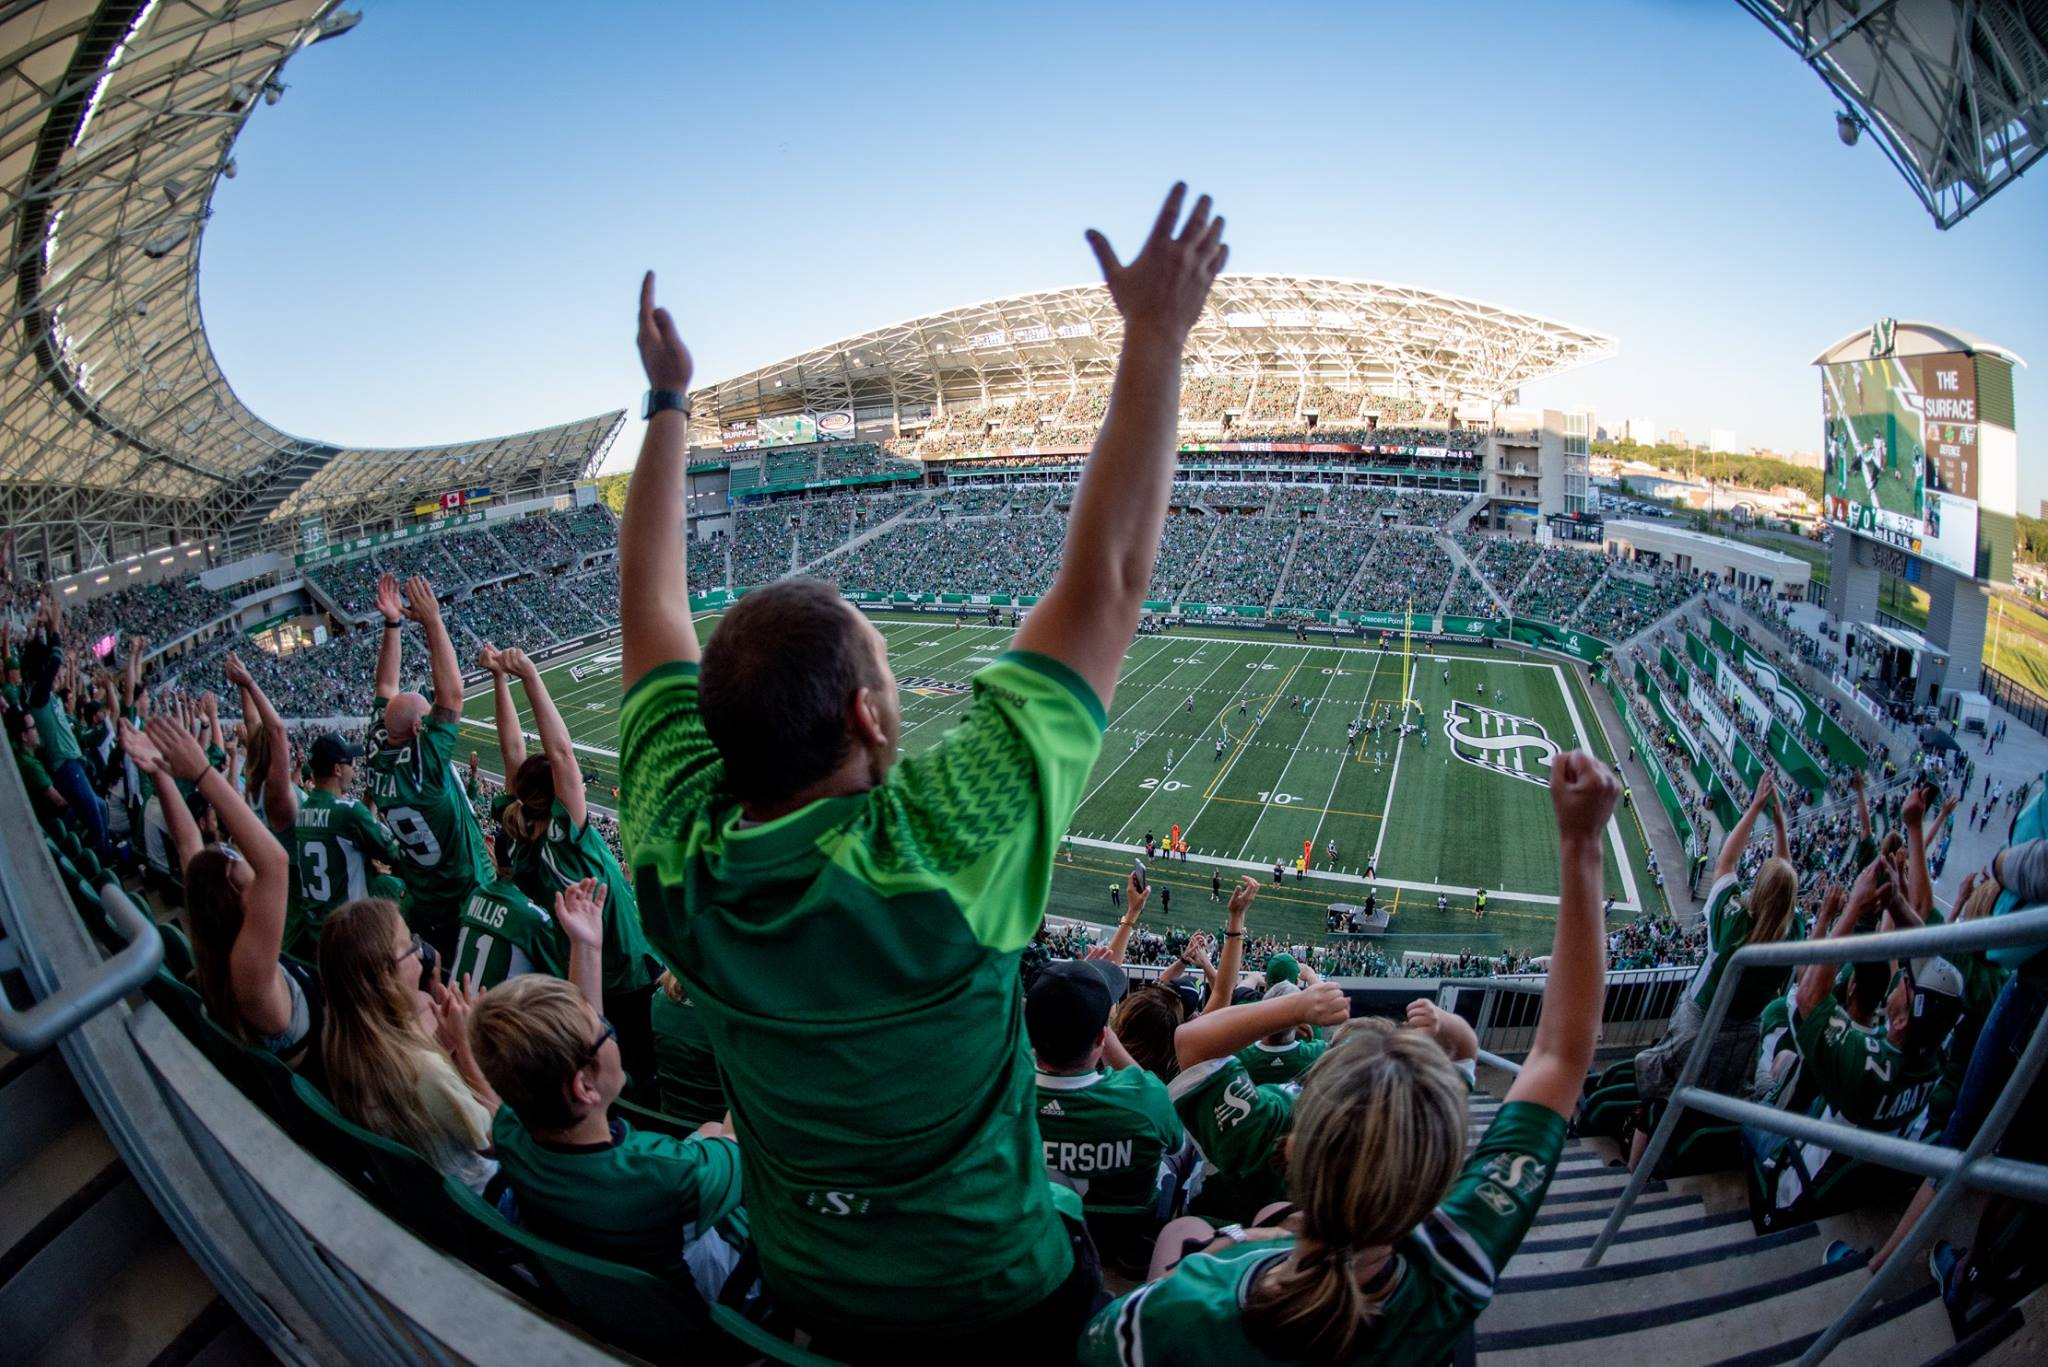 Saturday's Rider game is a sellout